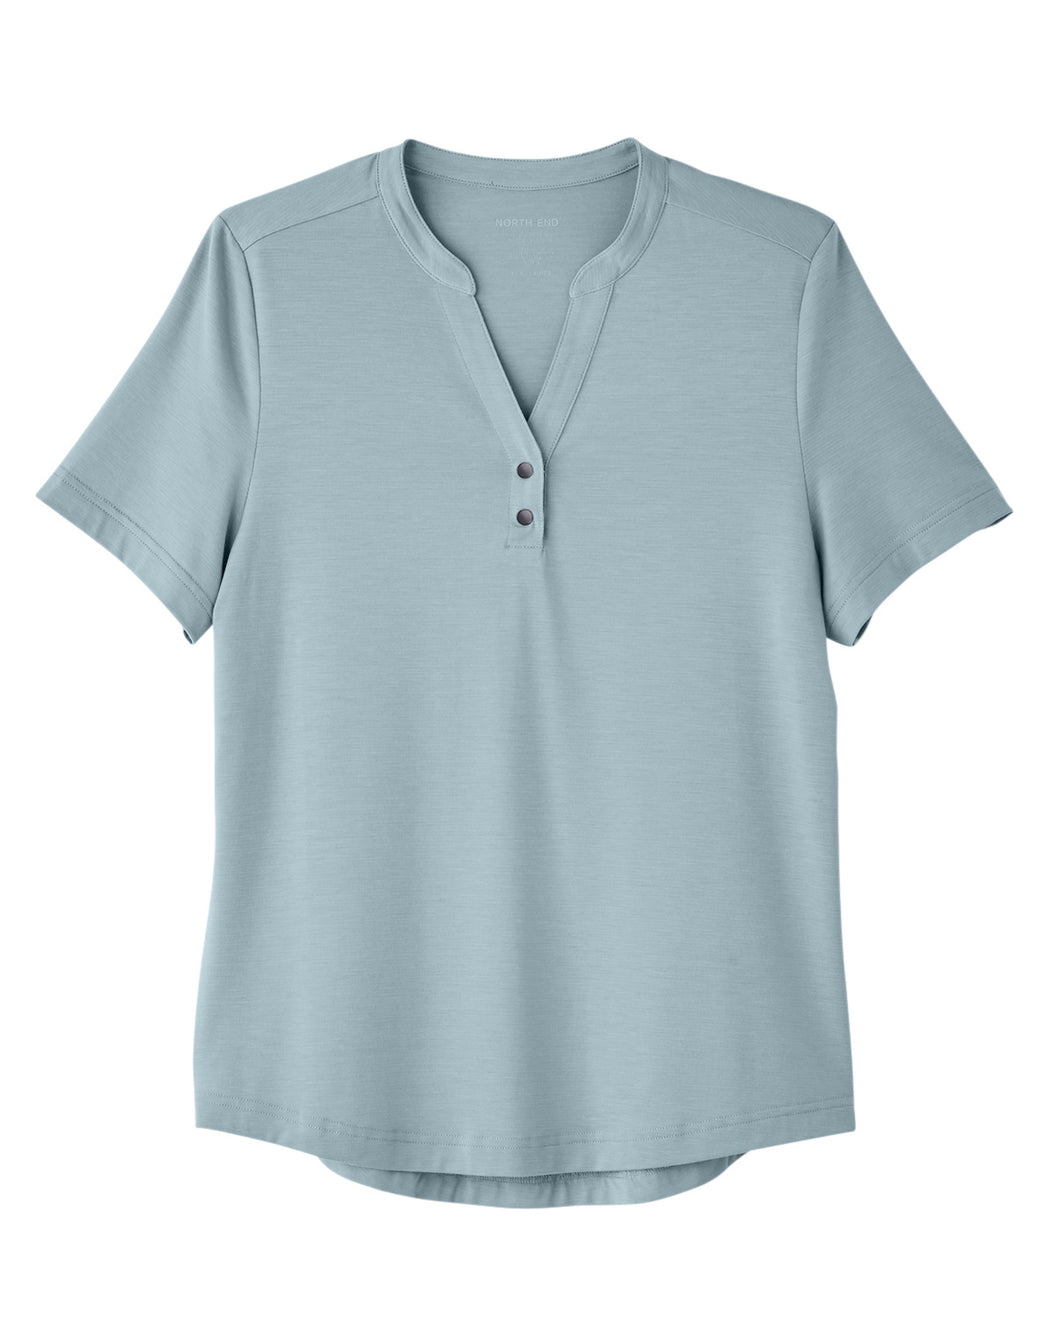 North End Snap-up Performance Polo - Womens